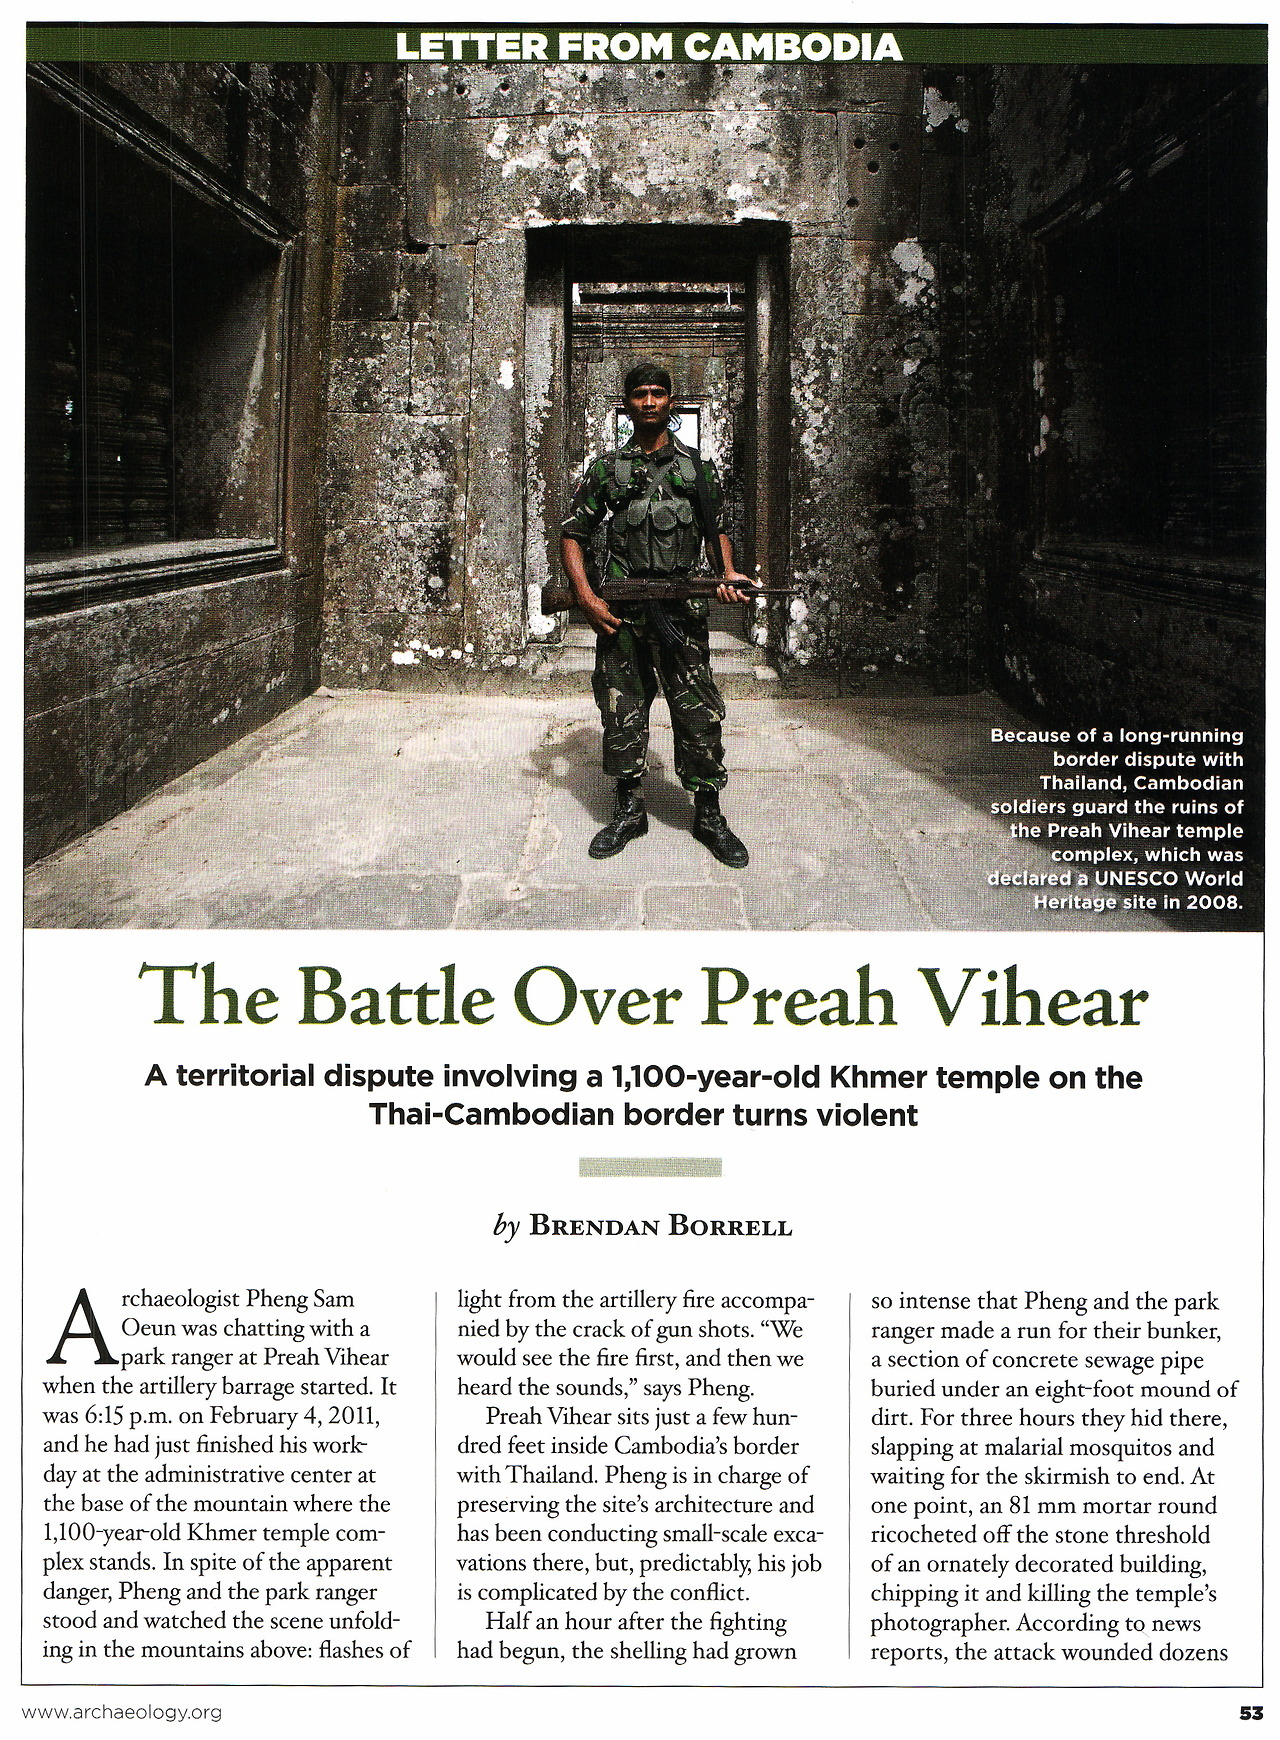 Here's a preview of my new story on the battle over the Preah Vihear ruins in Cambodia. It is in the March/April issue of Archaeology magazine